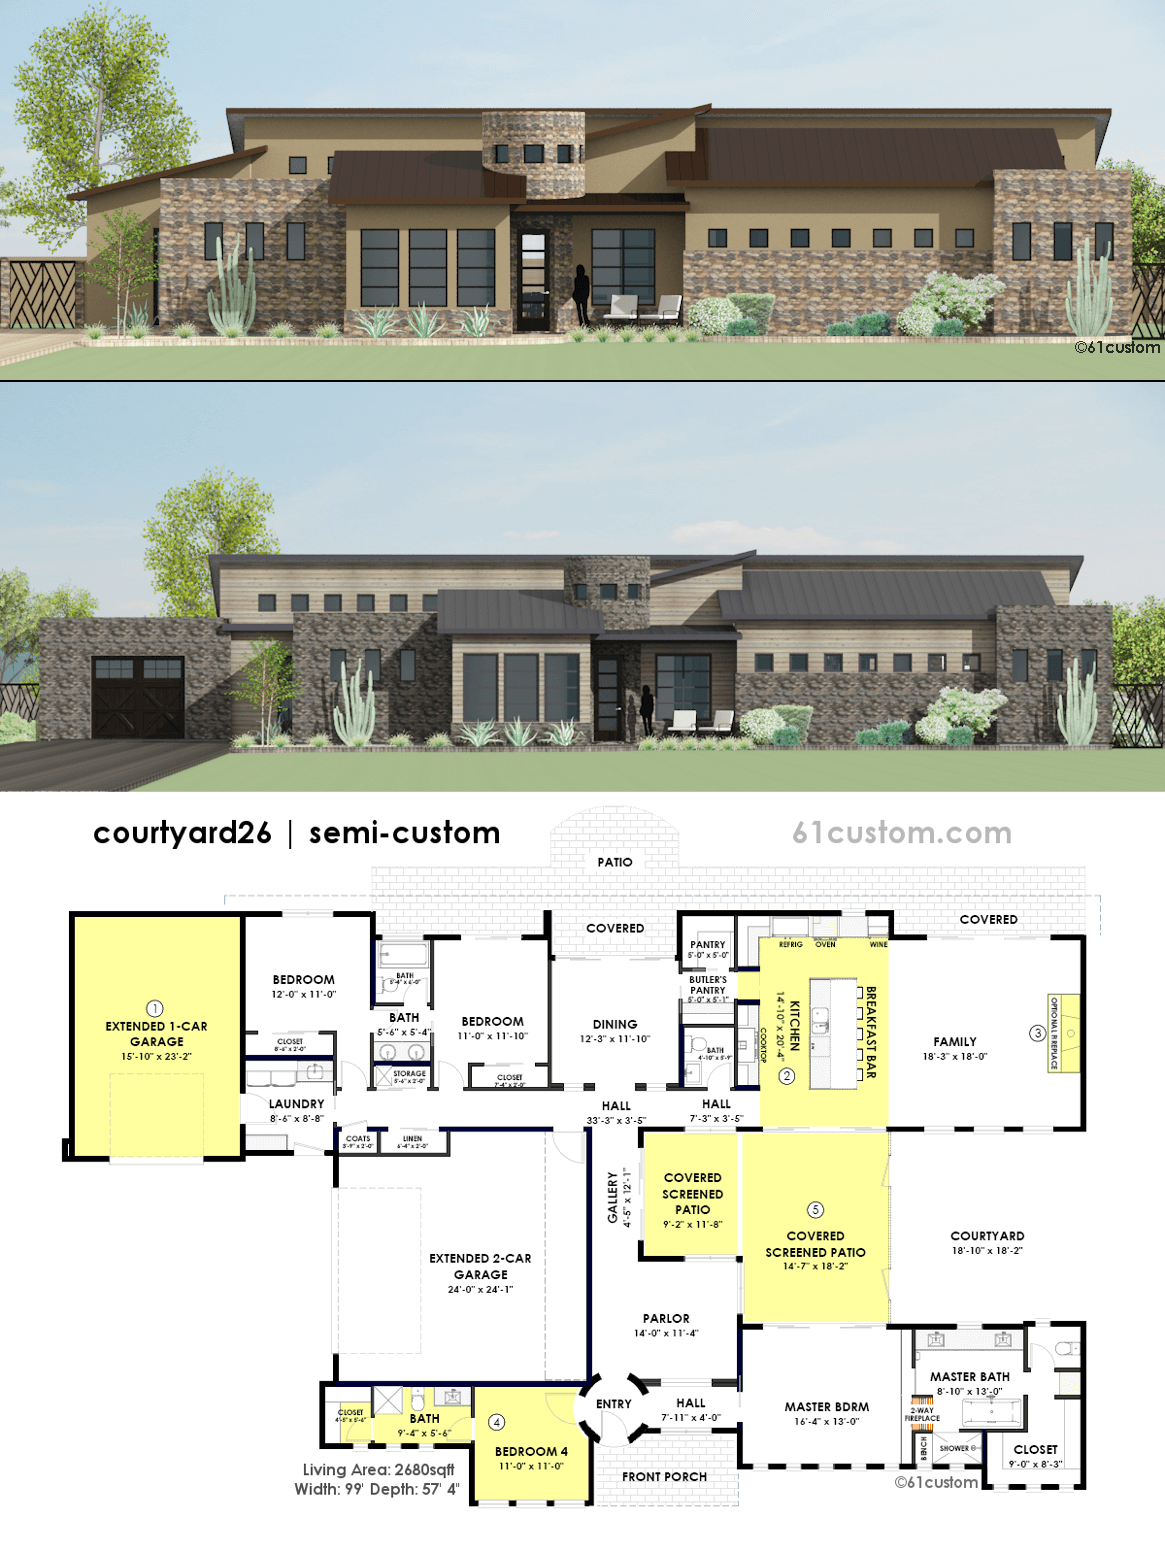 Courtyard house plans floor plans with center courtyard Contemporary house blueprints